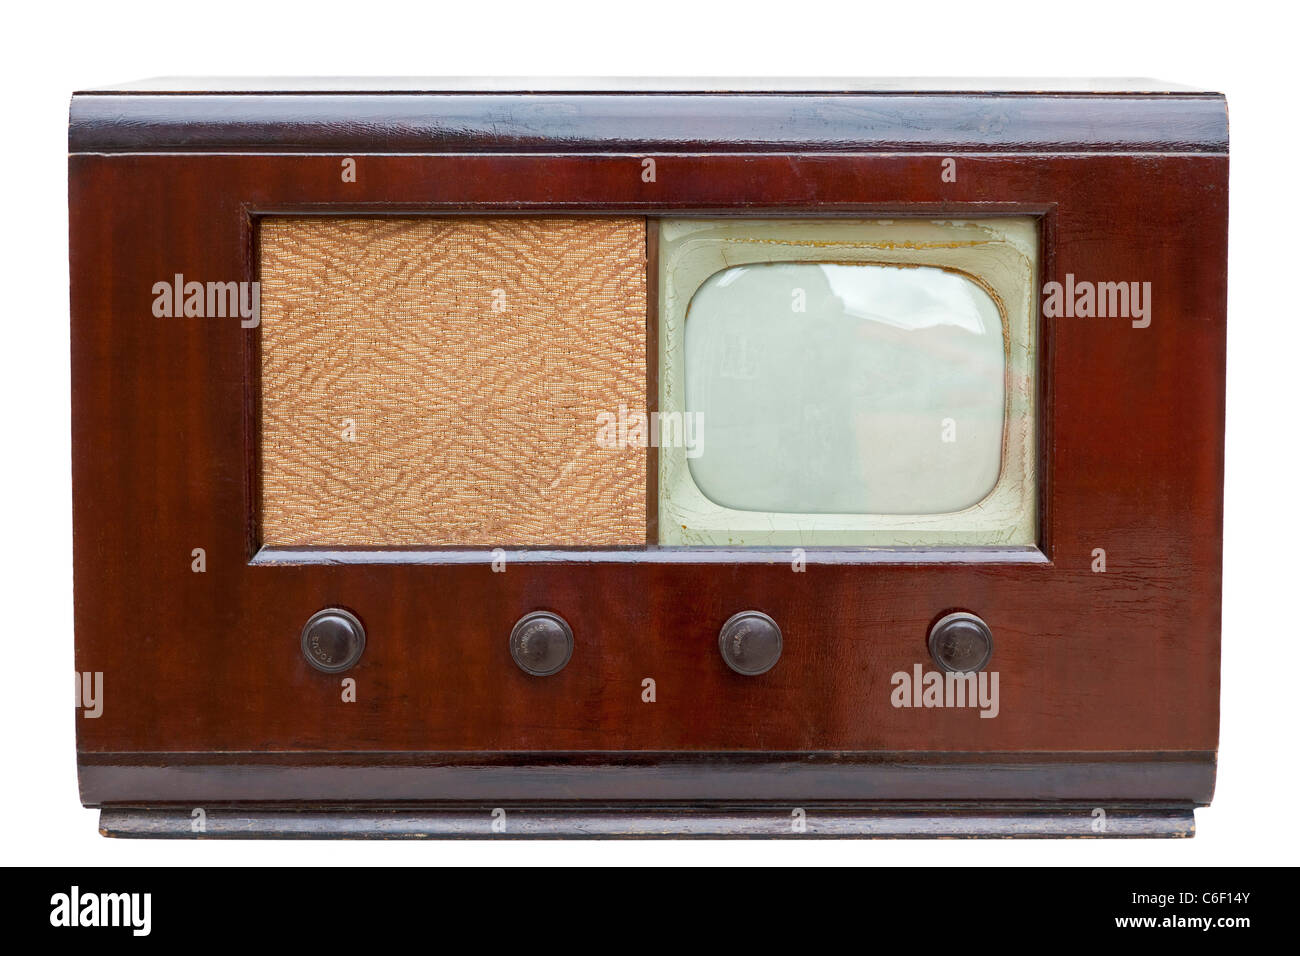 Vintage Philips model 383A television set from 1948 with 9 inch screen. JMH5163 - Stock Image